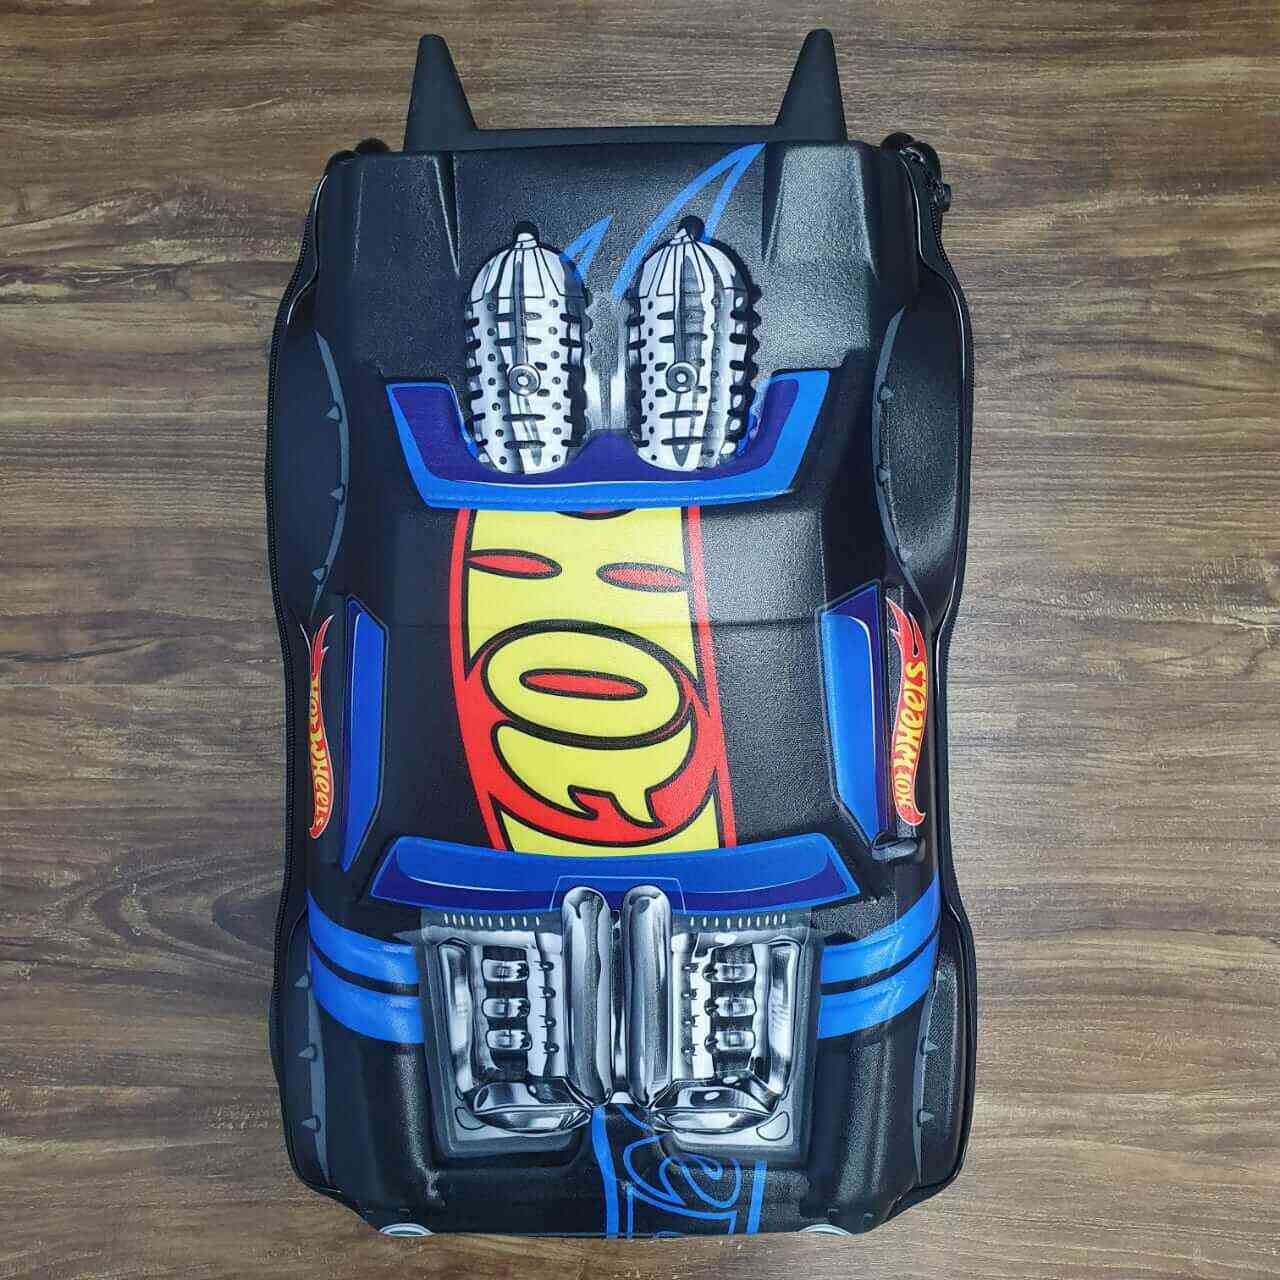 Mochila 3D com Rodinhase Hot Wheels Night Shifter Infantil